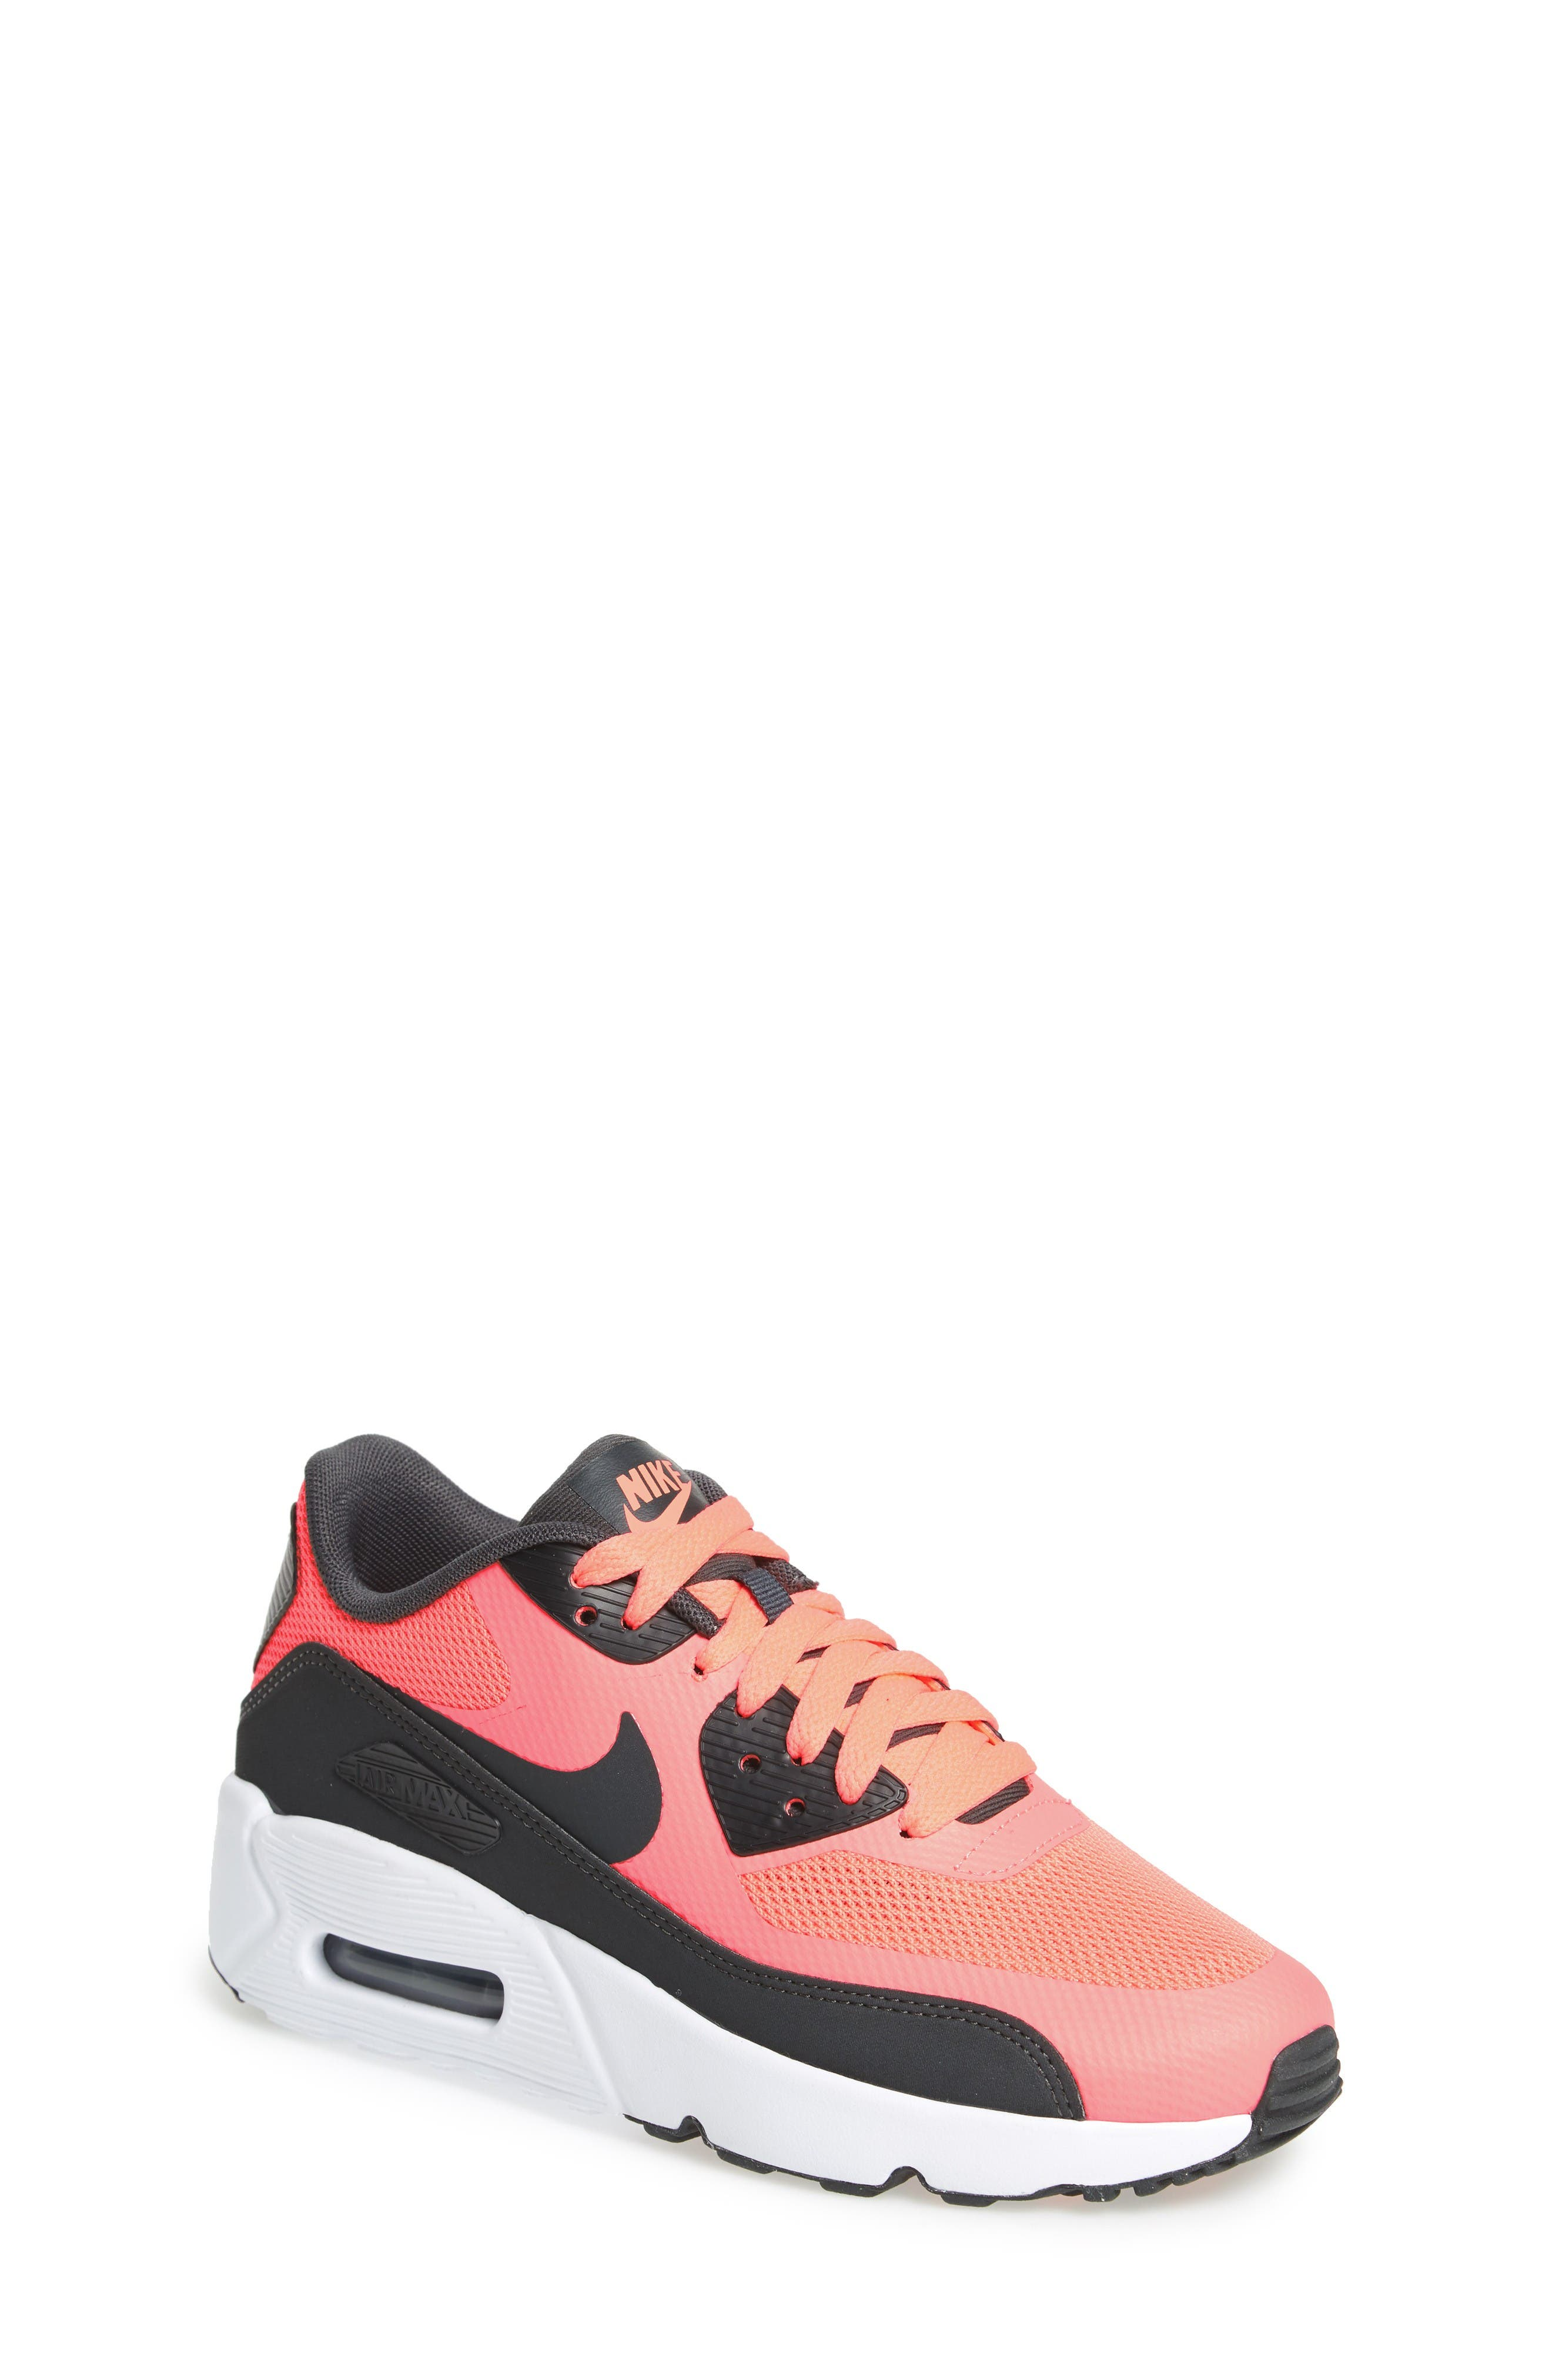 Nike Air Max 90 Ultra 2.0 GS Sneaker (Big Kid)